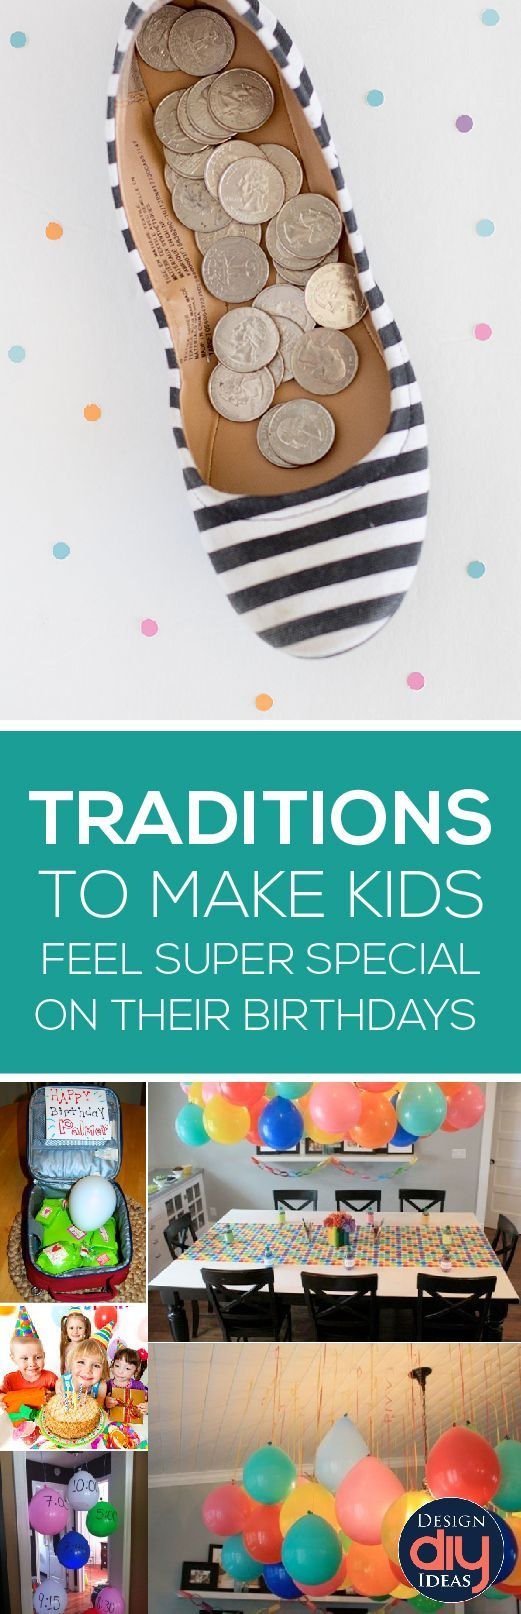 How can you make your kids feel super special on their birthdays? Check out these simple traditions that make a big difference.